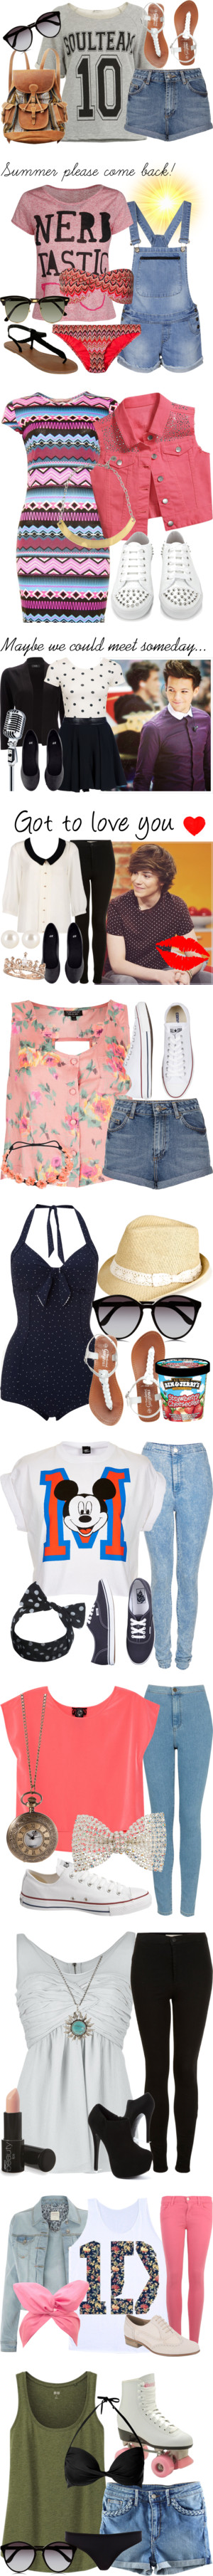 """♥"" by bpacheco ❤ liked on Polyvore"